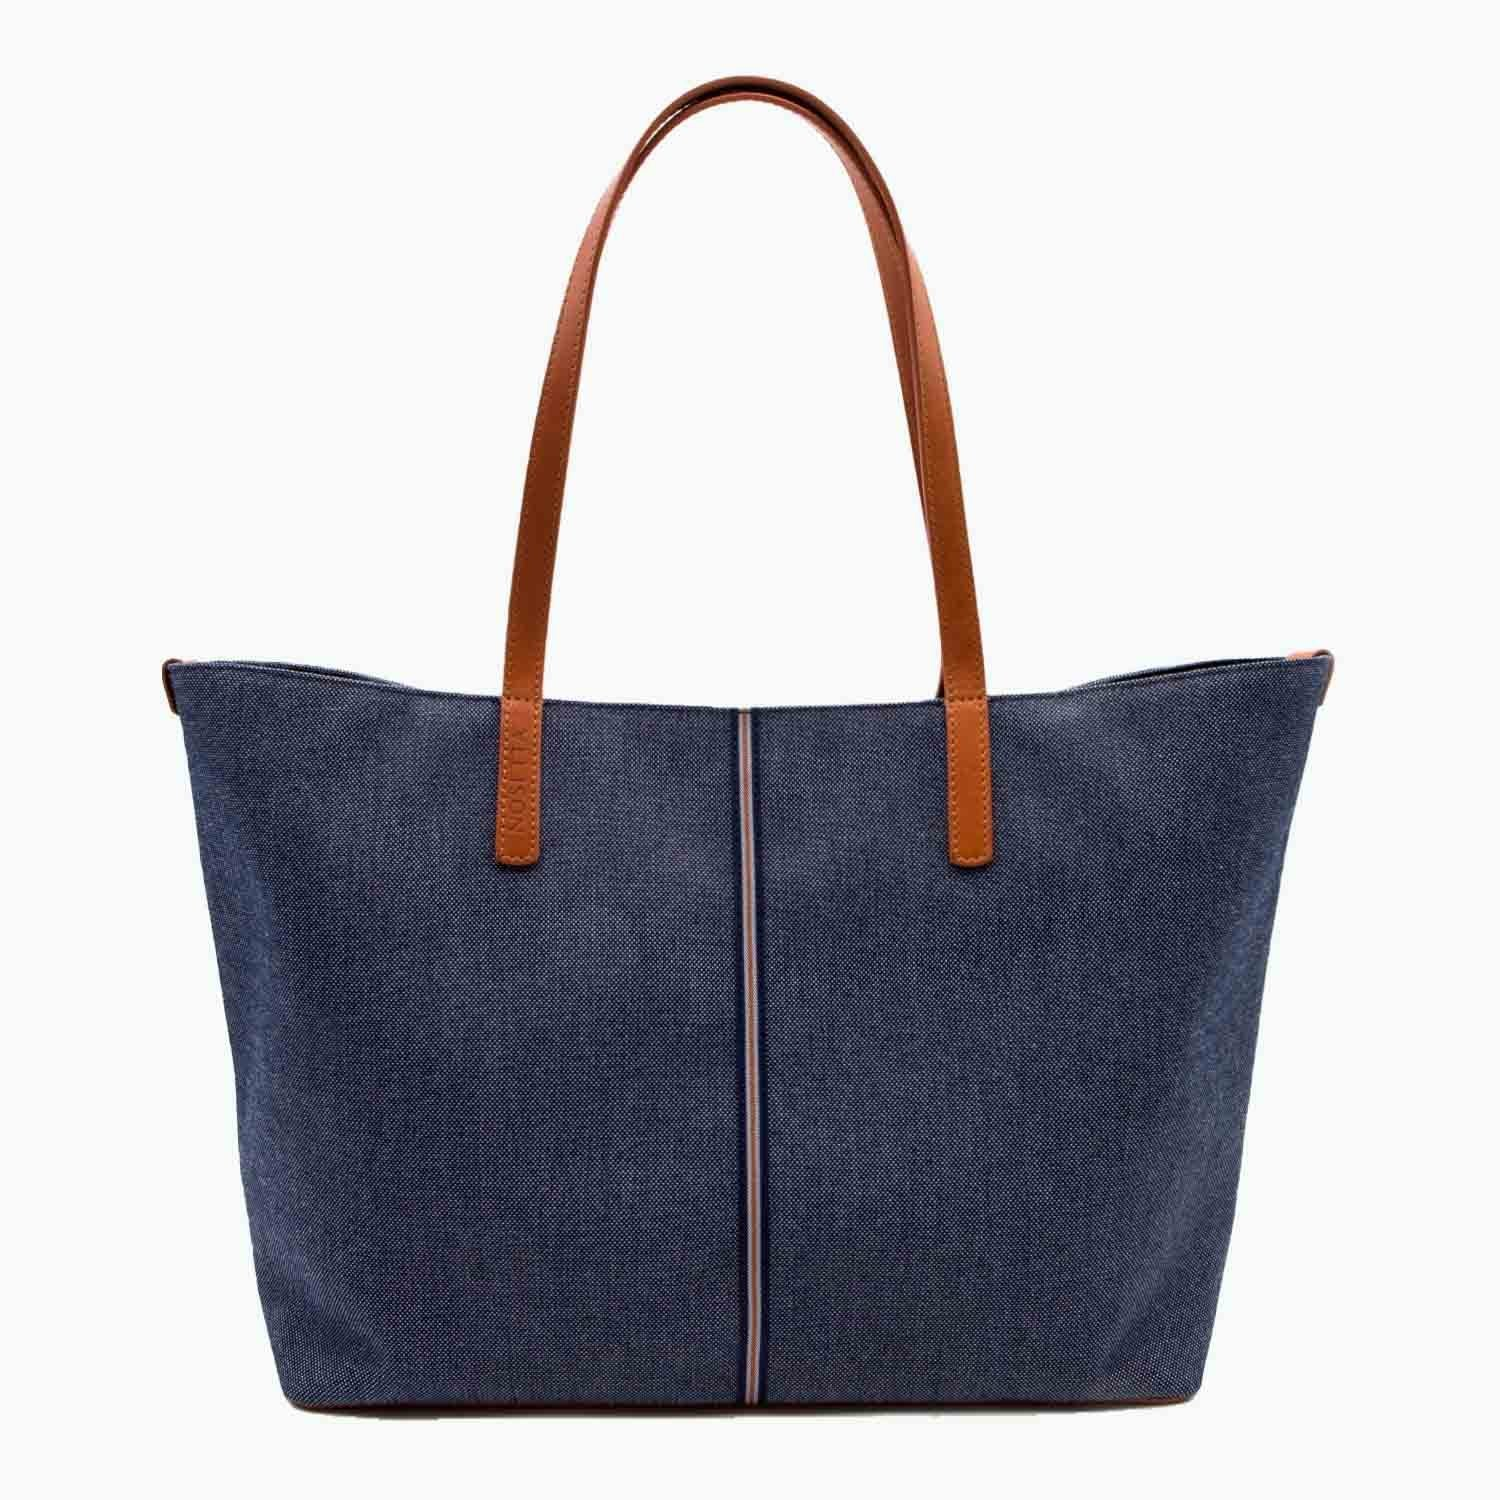 Celesia Medium Tote Denim and Leather - Nosetta